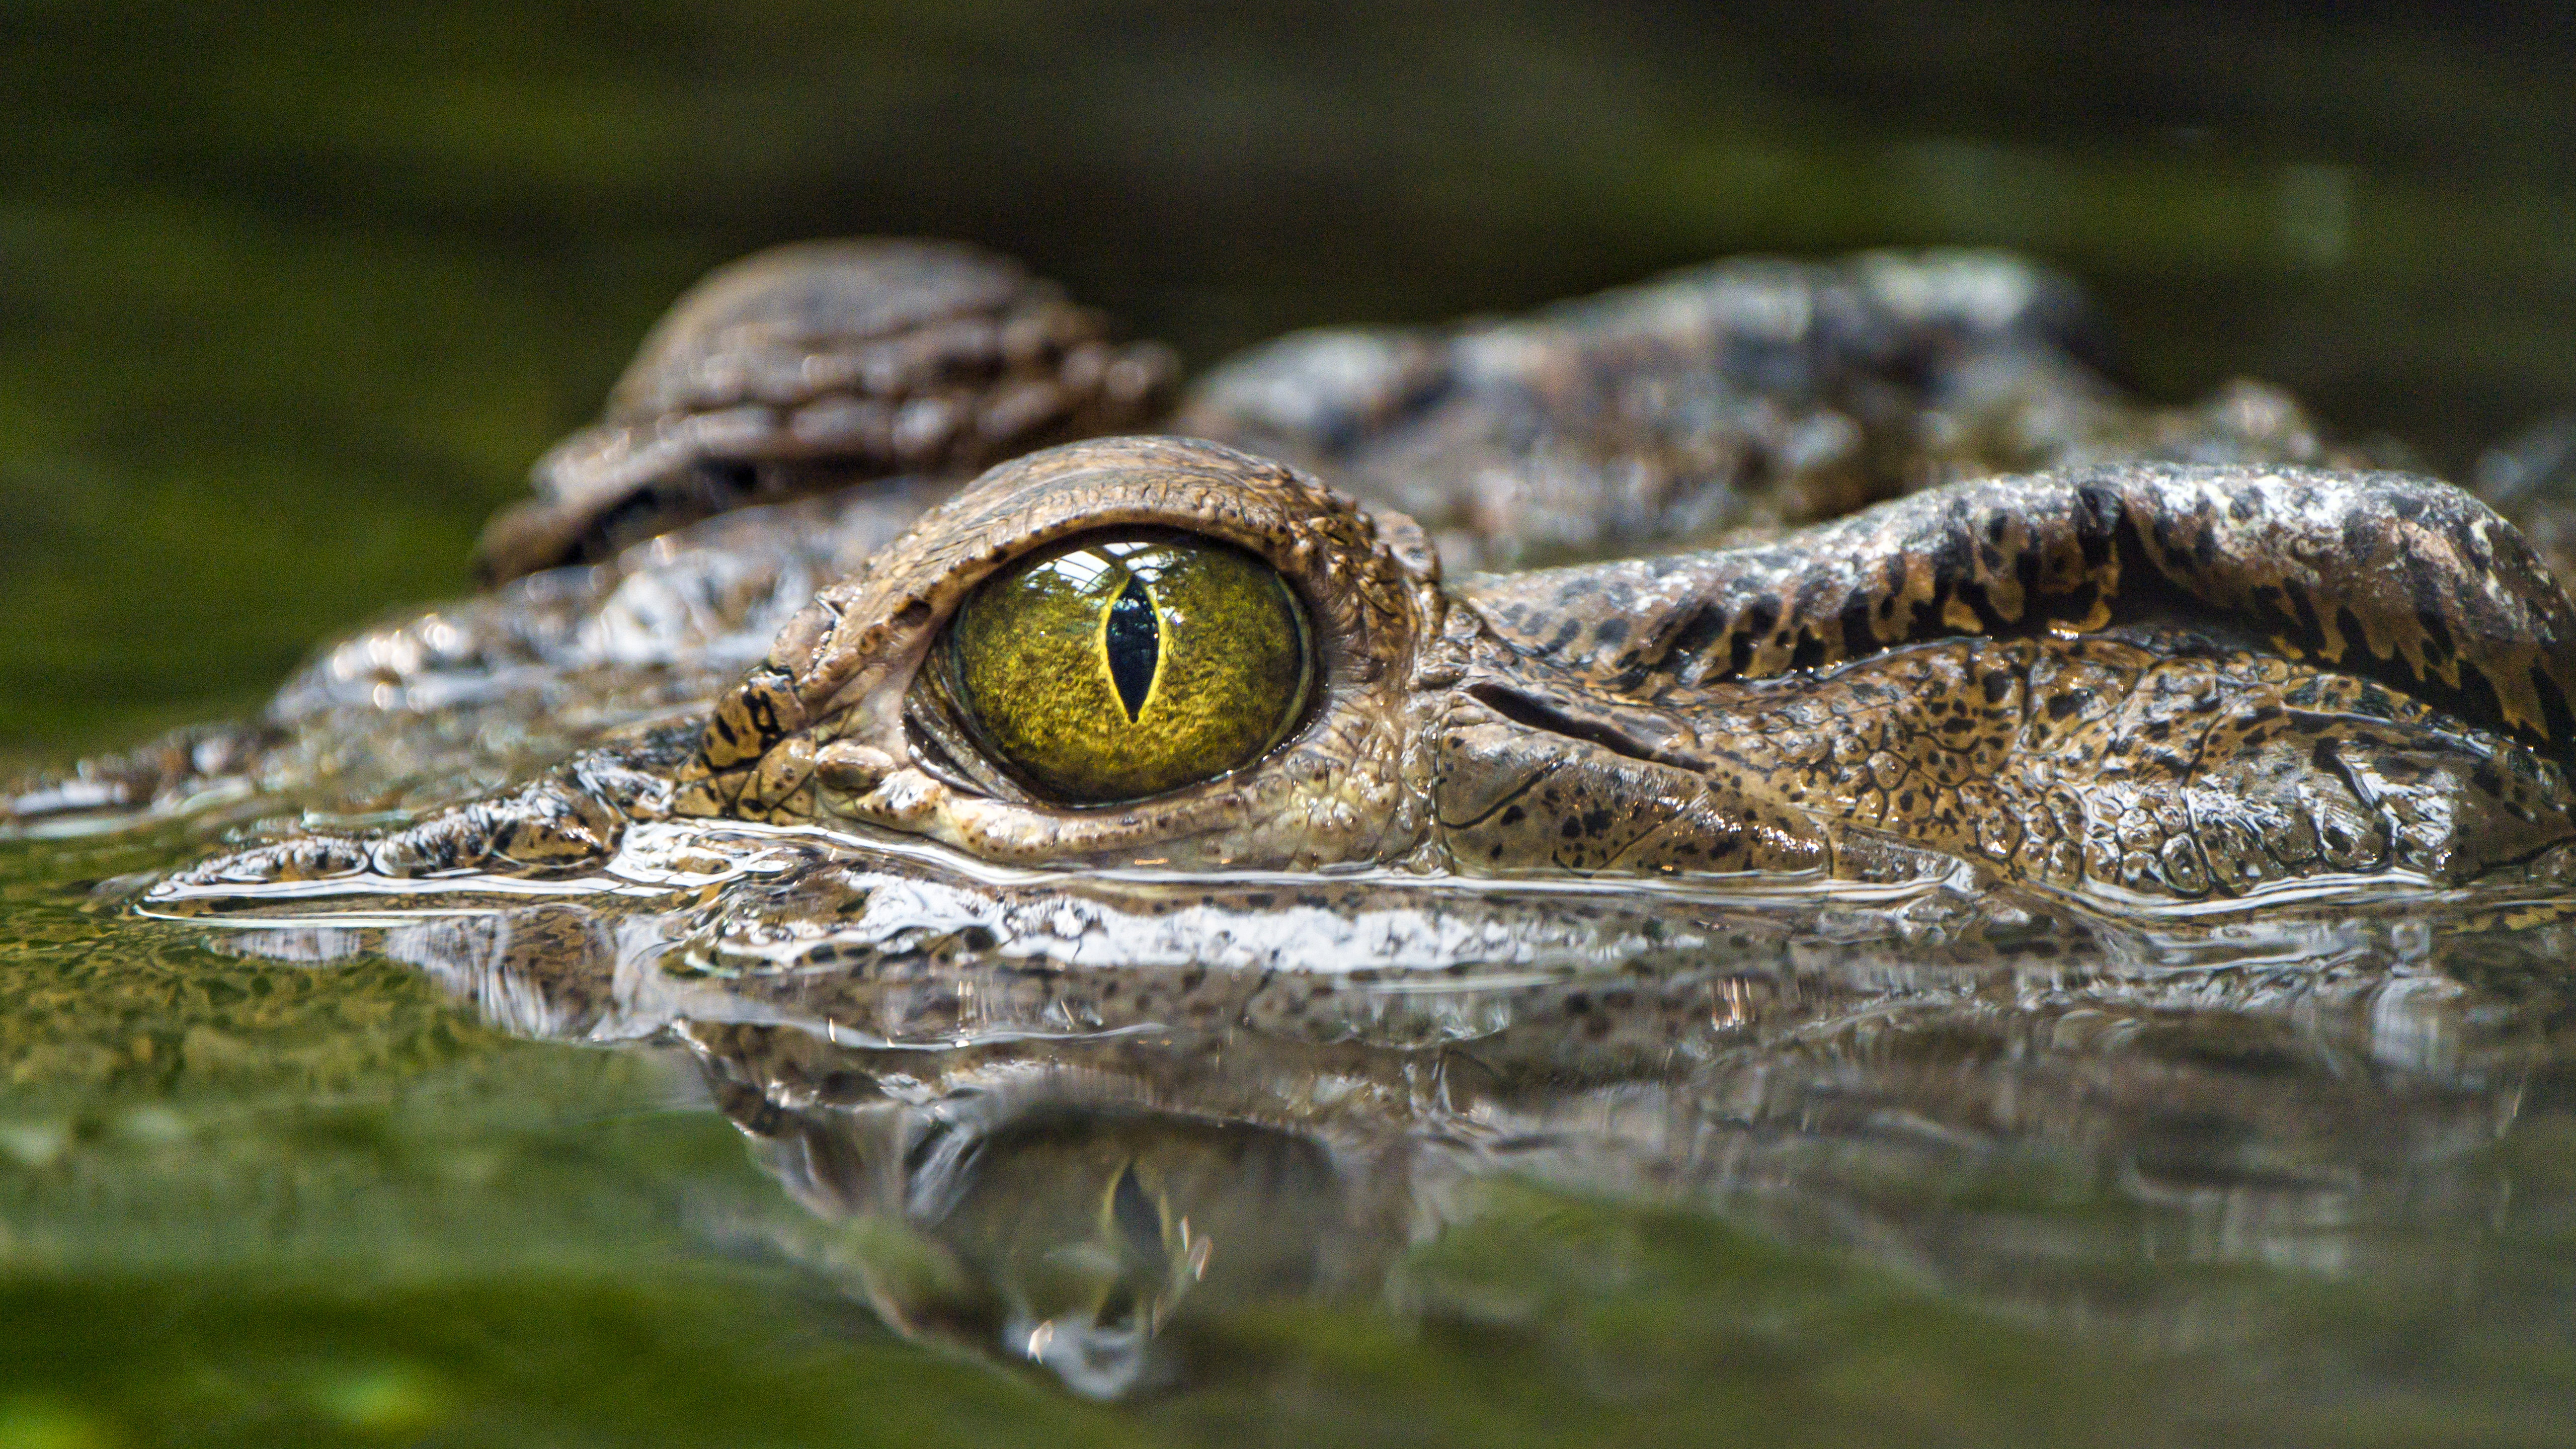 131638 download wallpaper Animals, Crocodile, Eye, Predator, Reptiles, Water screensavers and pictures for free